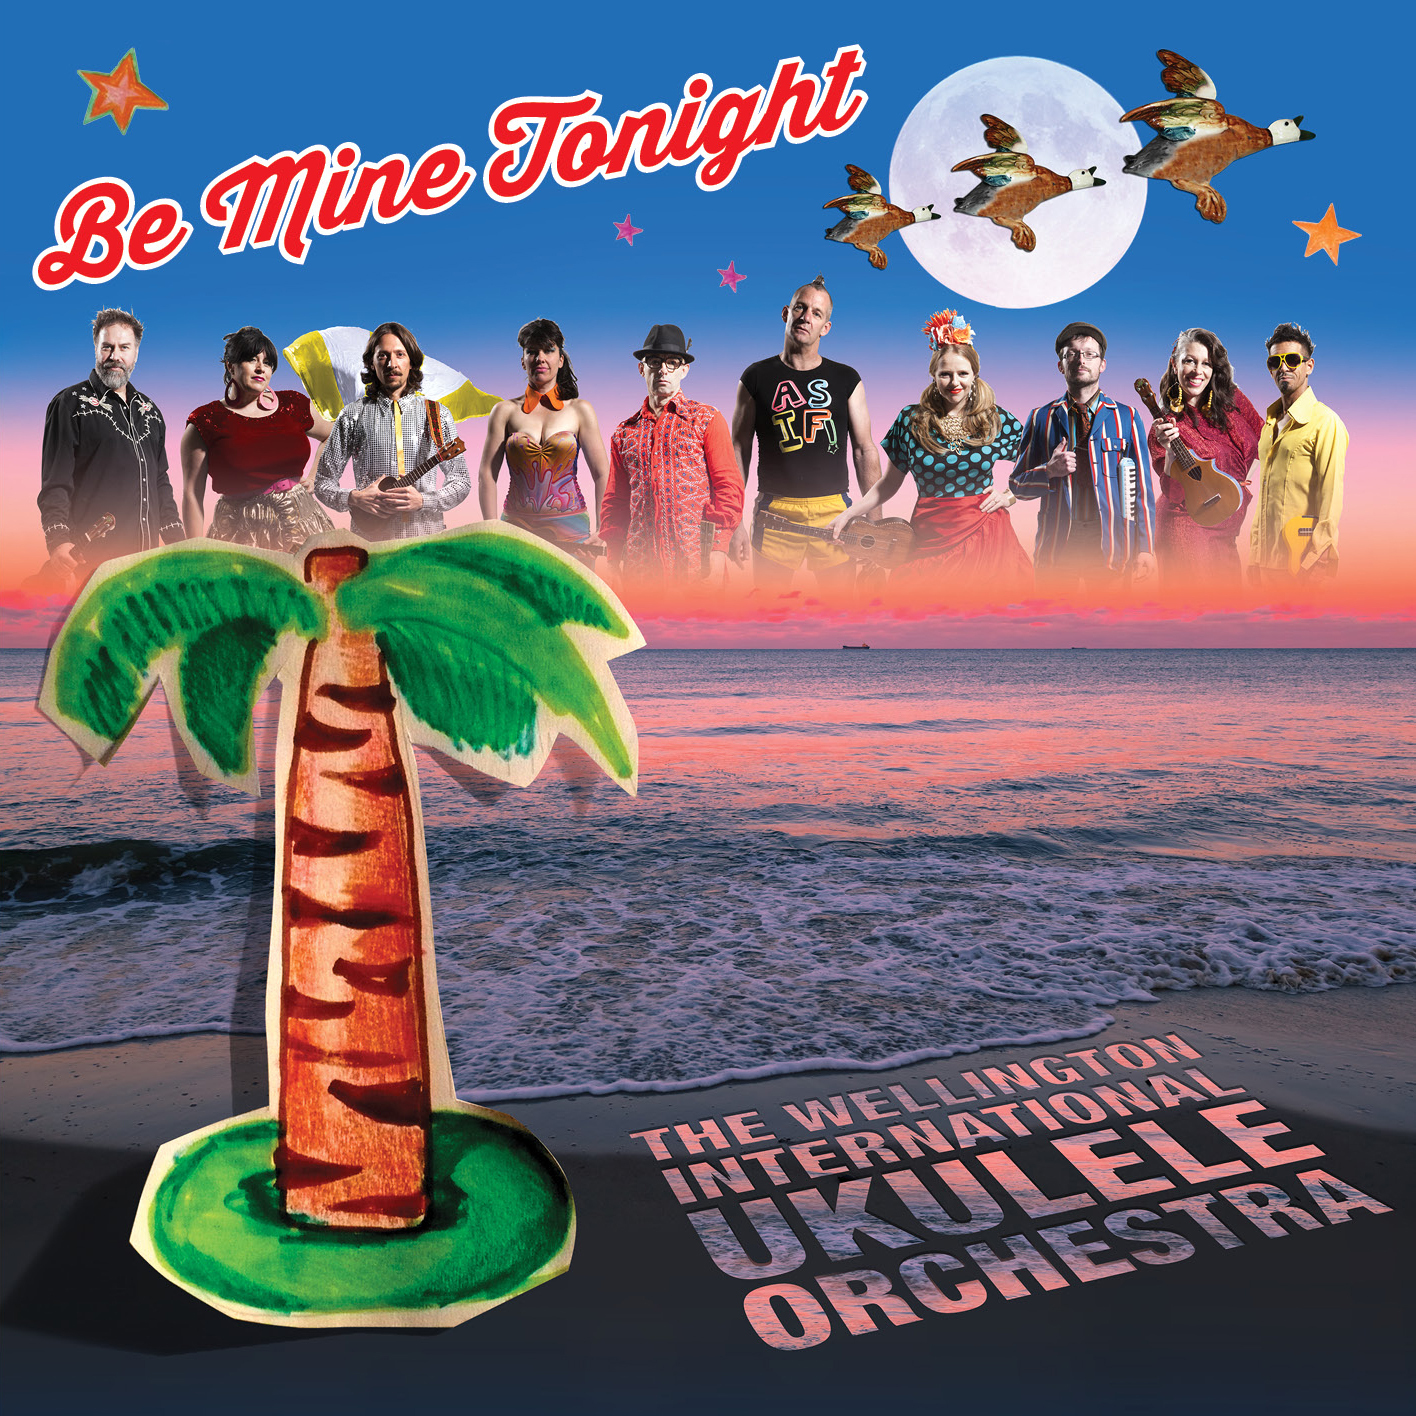 Be Mine Tonight by Wellington International Ukulele Orchestra image